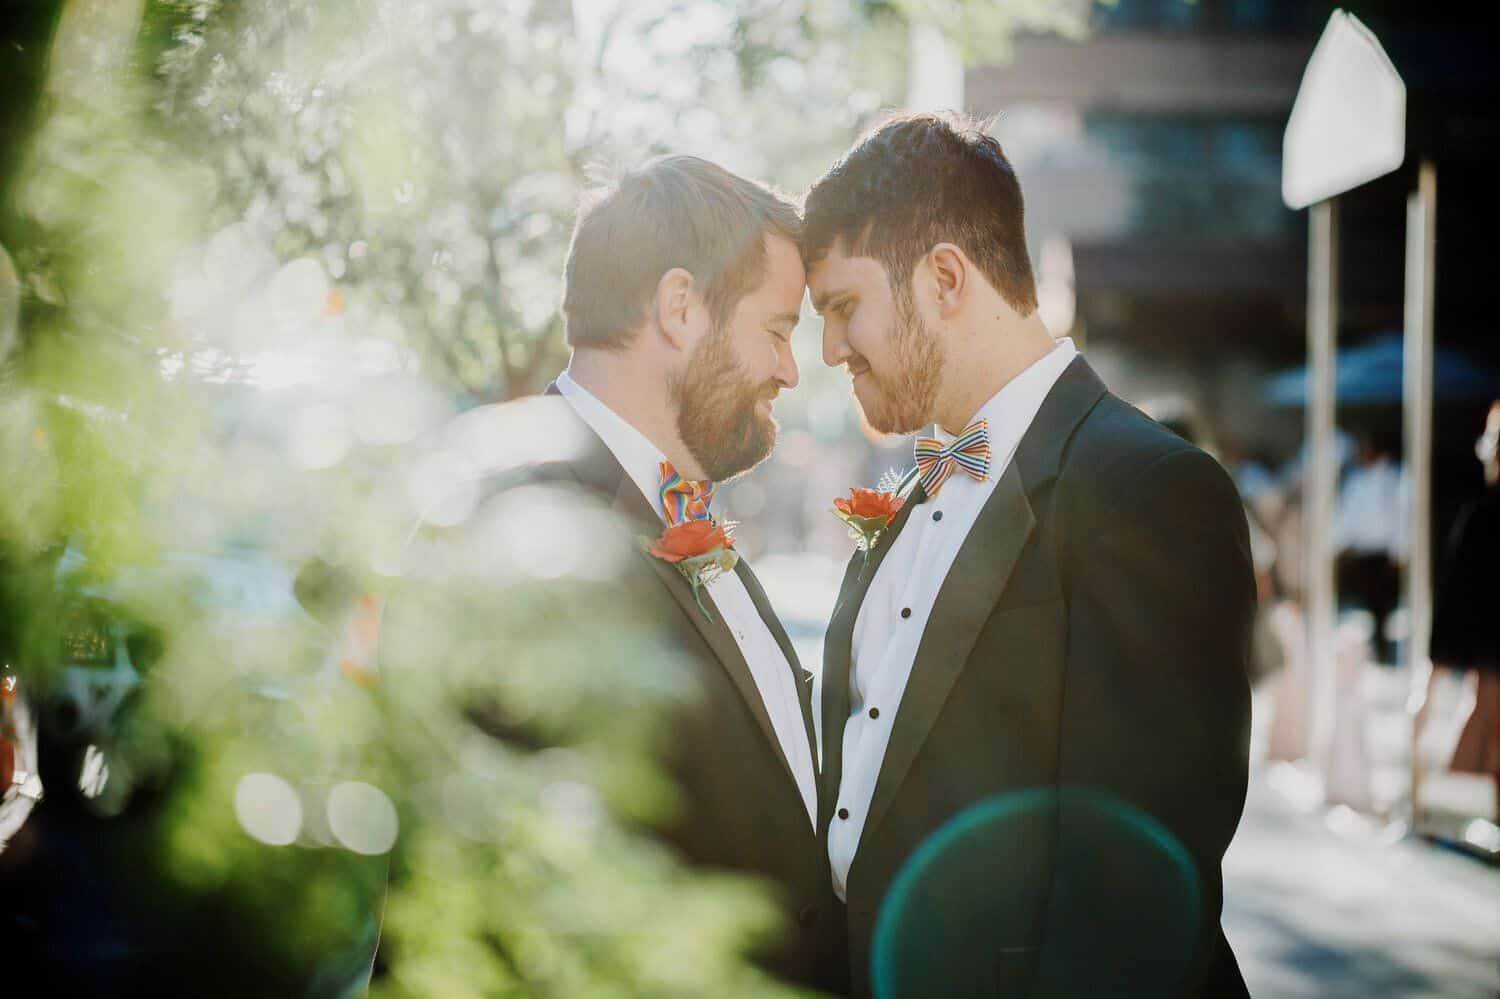 Two grooms stand forehead to forehead with sun flare highlighting the foliage around them.